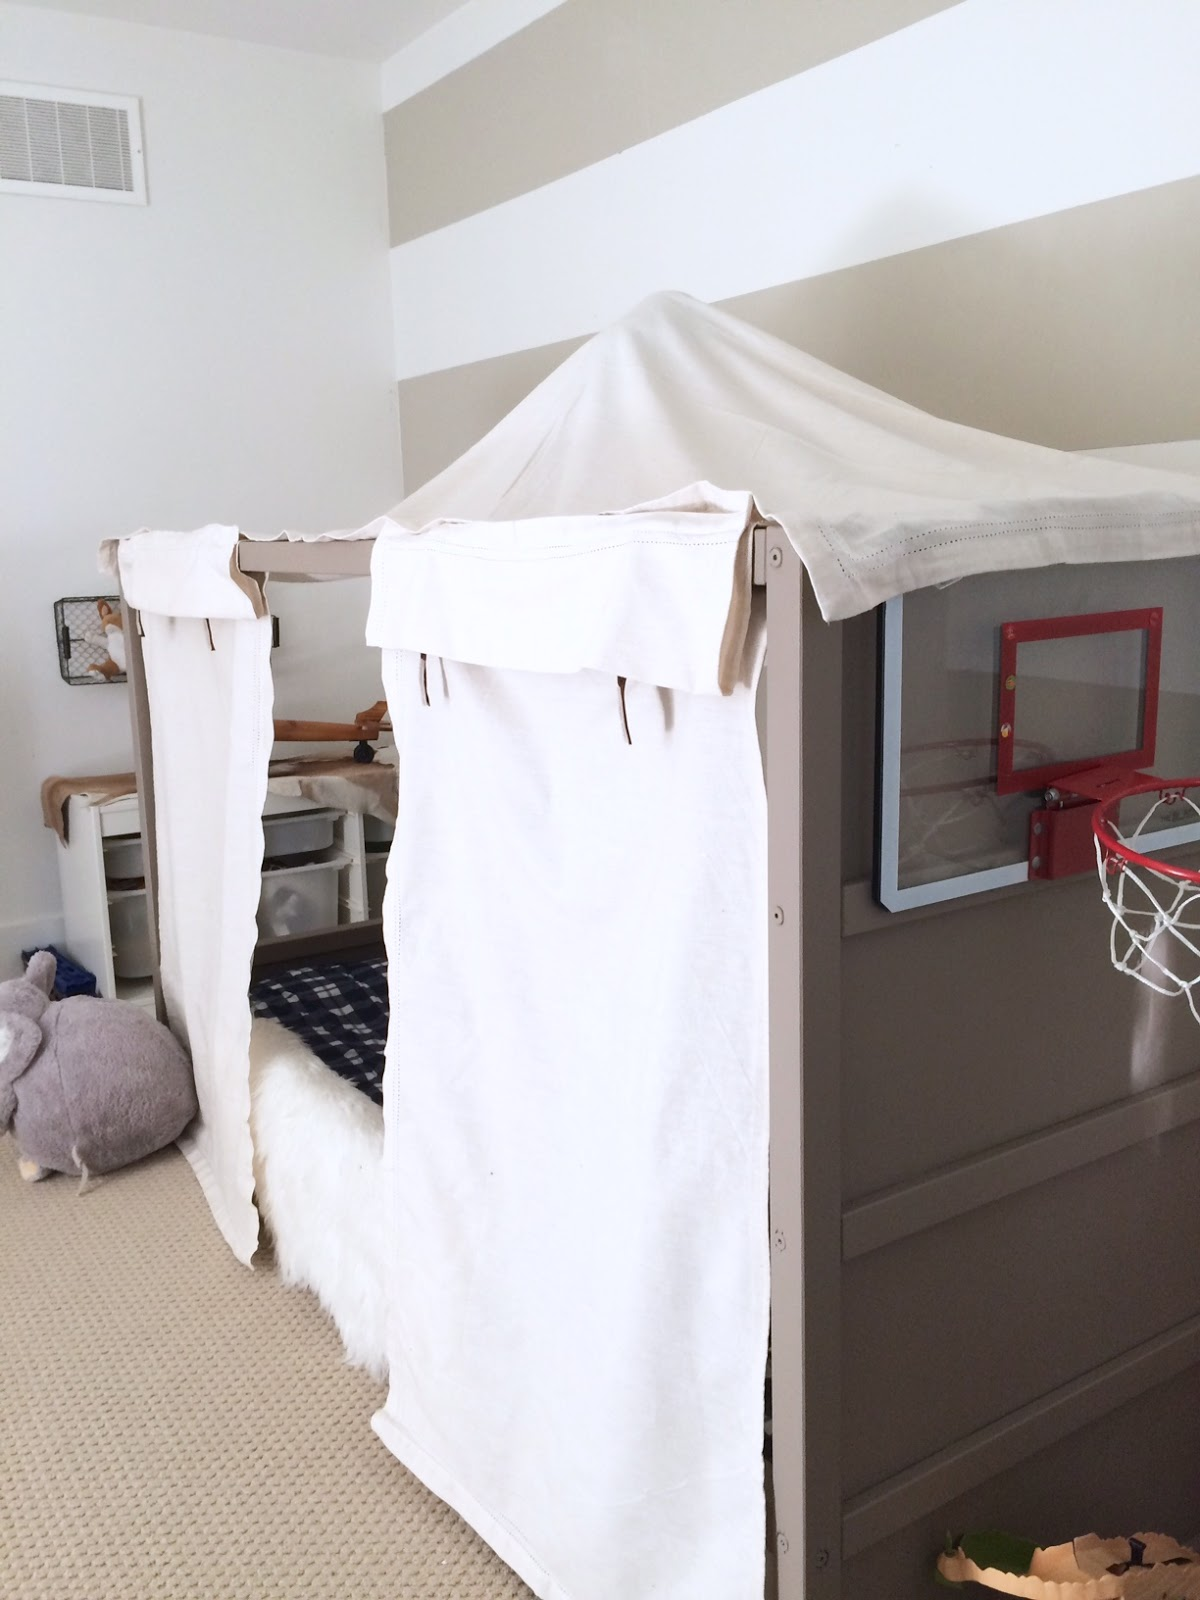 IKEA Kura Bed Hack DIY Boy Canopy Bed | Harlow u0026 Thistle - Home Design - Lifestyle - DIY & IKEA Kura Bed Hack: DIY Boy Canopy Bed | Harlow u0026 Thistle - Home ...